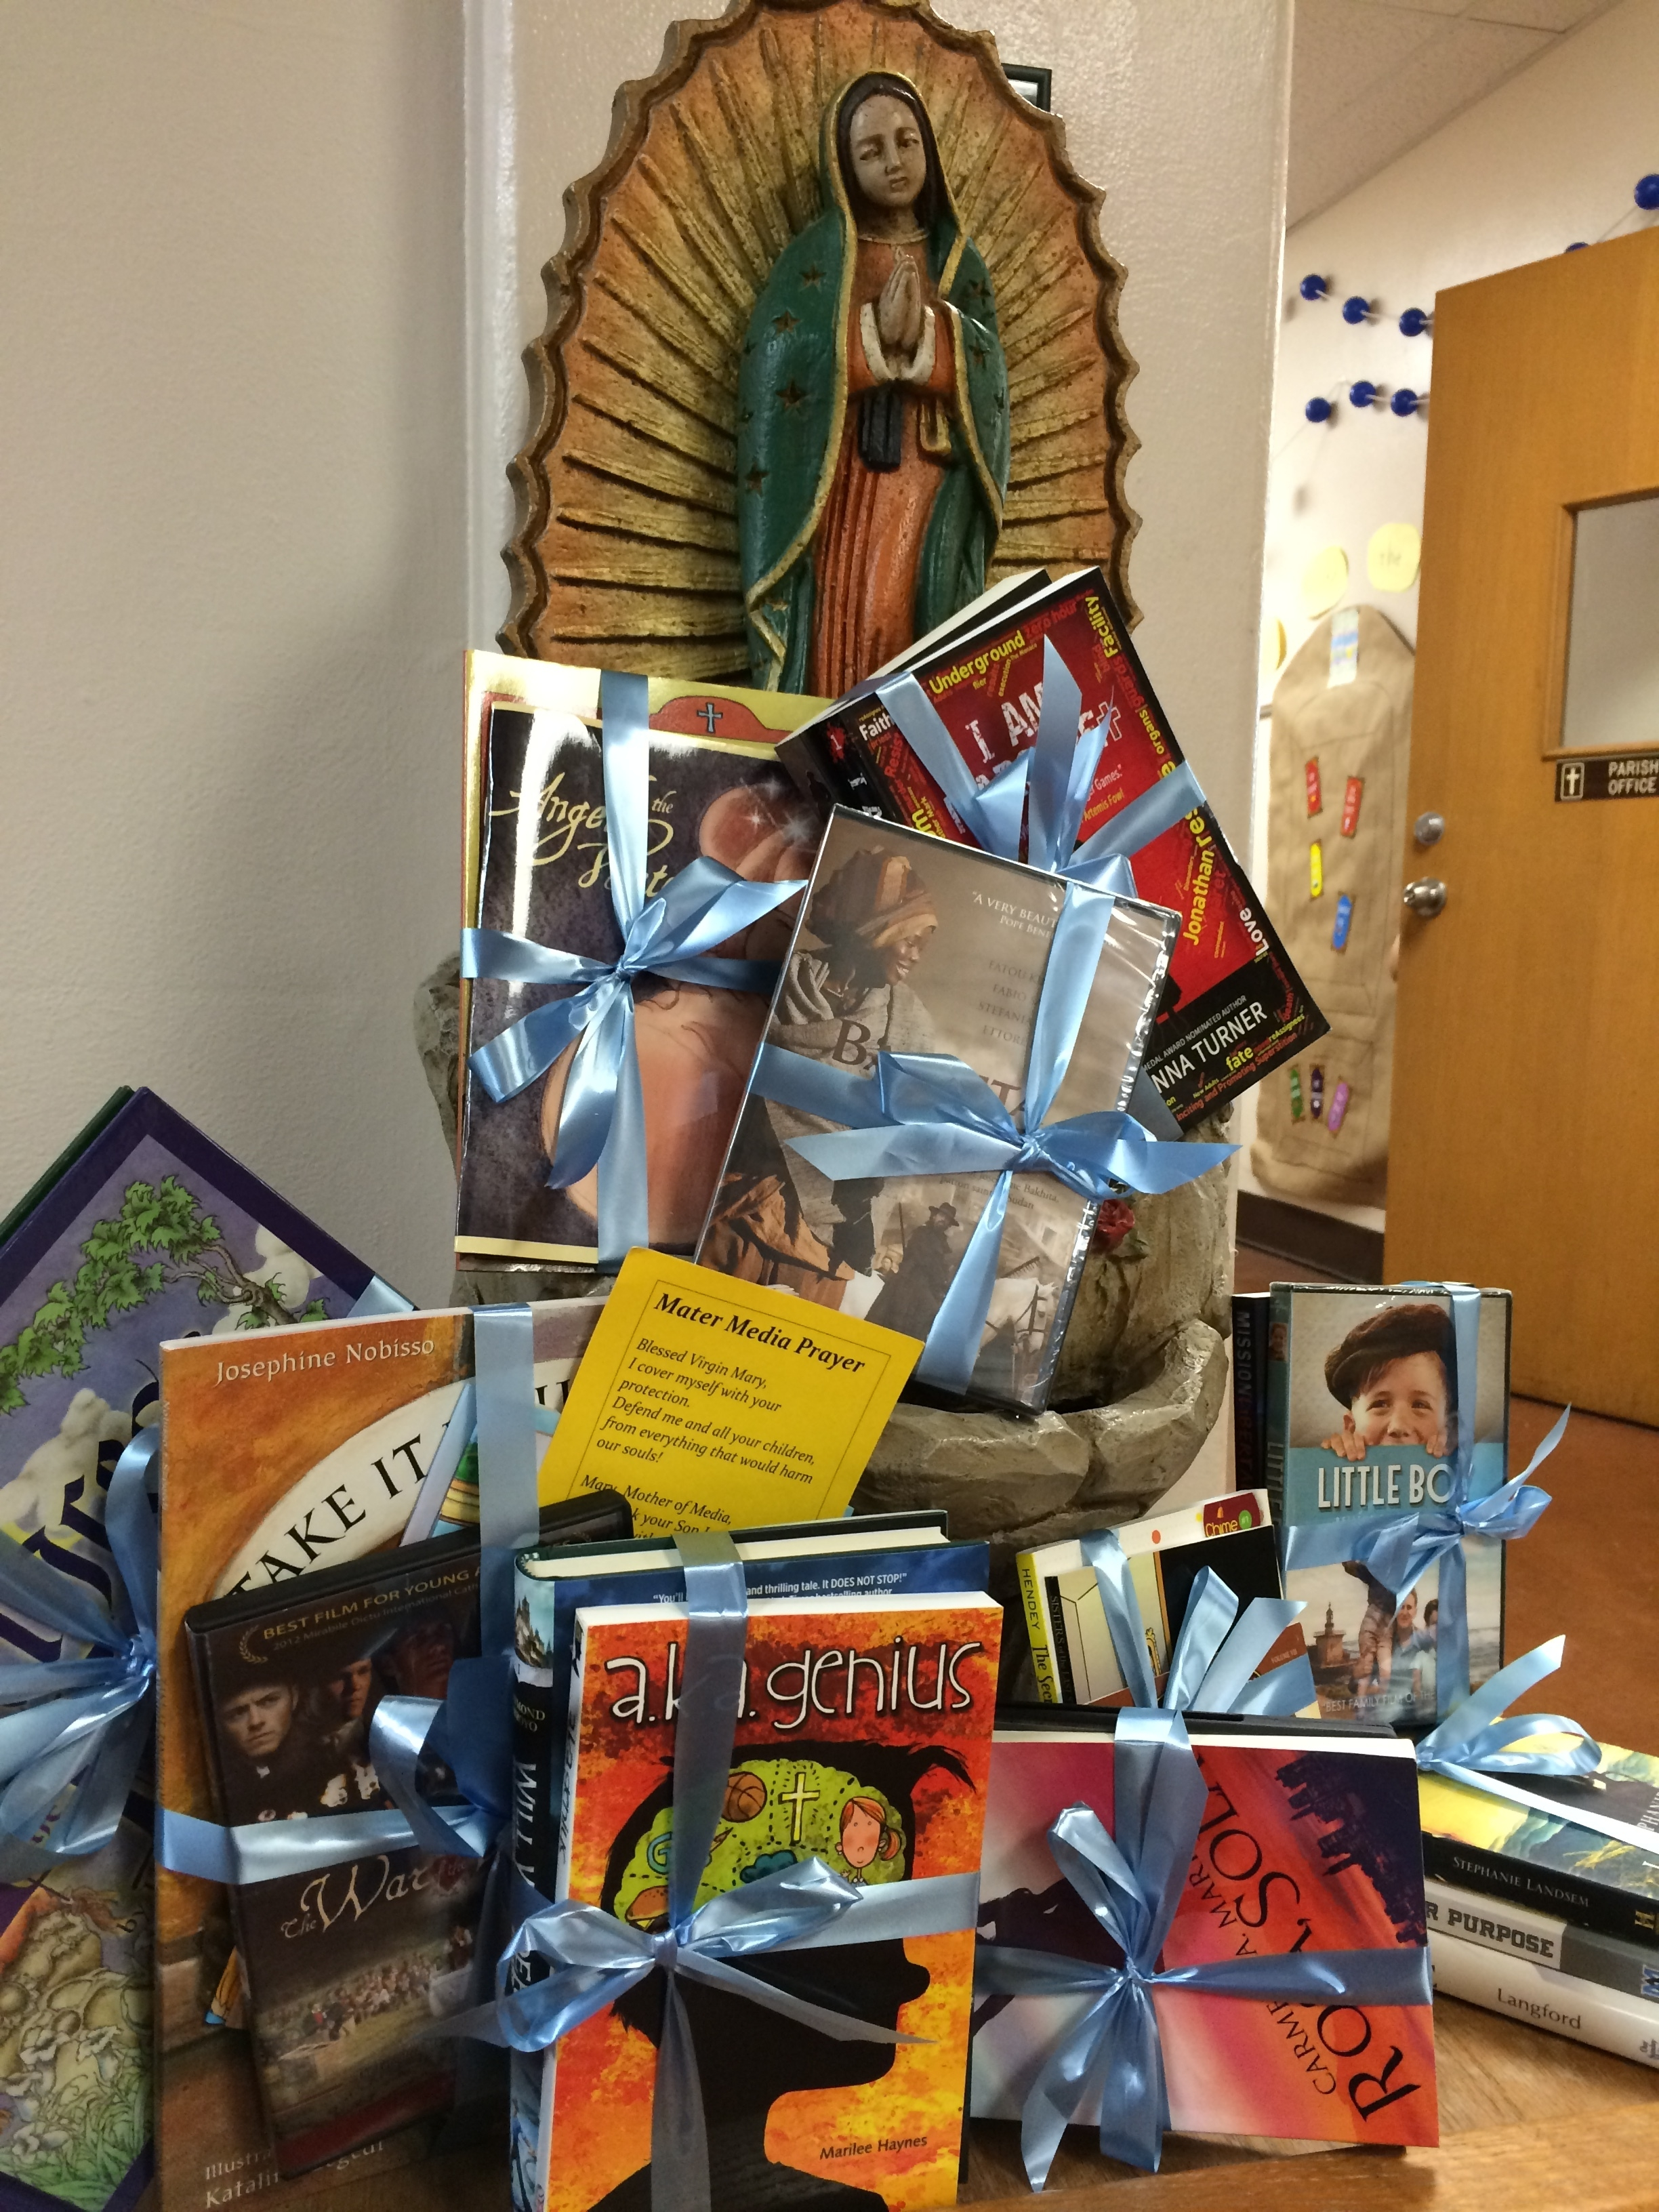 A donation of virtue-rich books and movies to Our Lady of Guadeloupe School in FERGUSON, MO is just one of the ways we've been spreading the word about VIRTUE WORKS MEDIA to Catholic schools and educators.